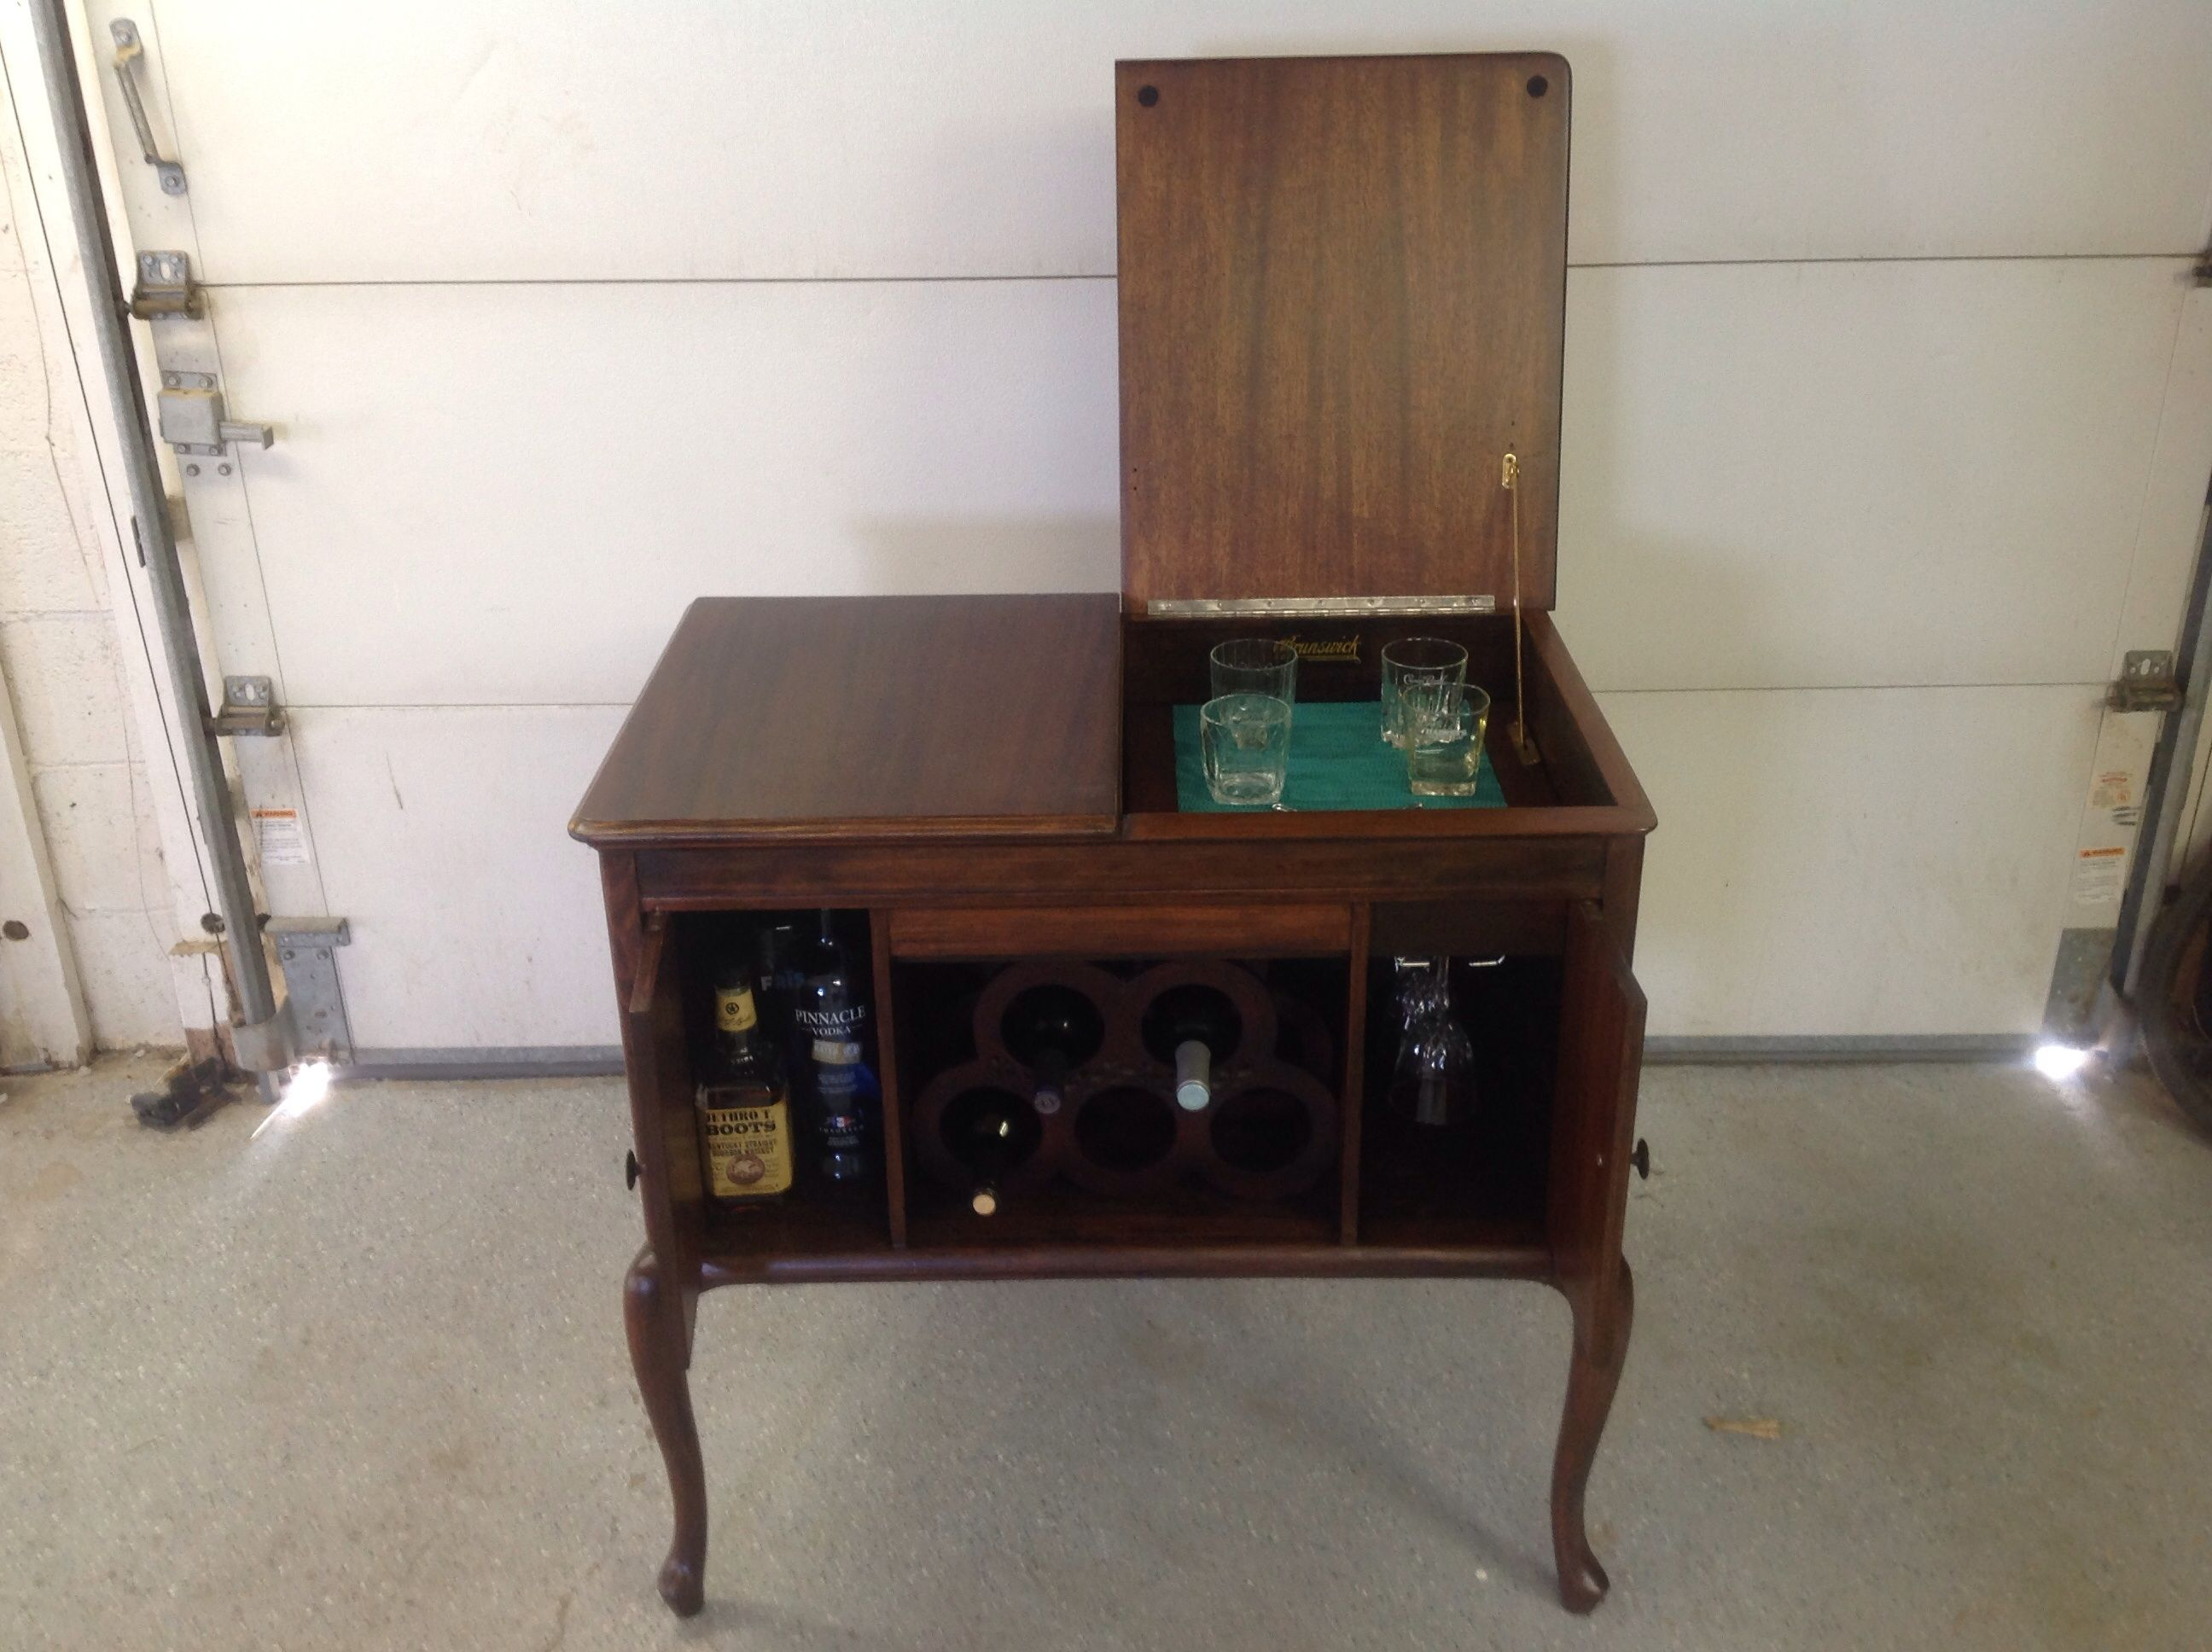 Repurposed Brunswick Victrola Cabinet To A Wine/ Liquor Cabinet.